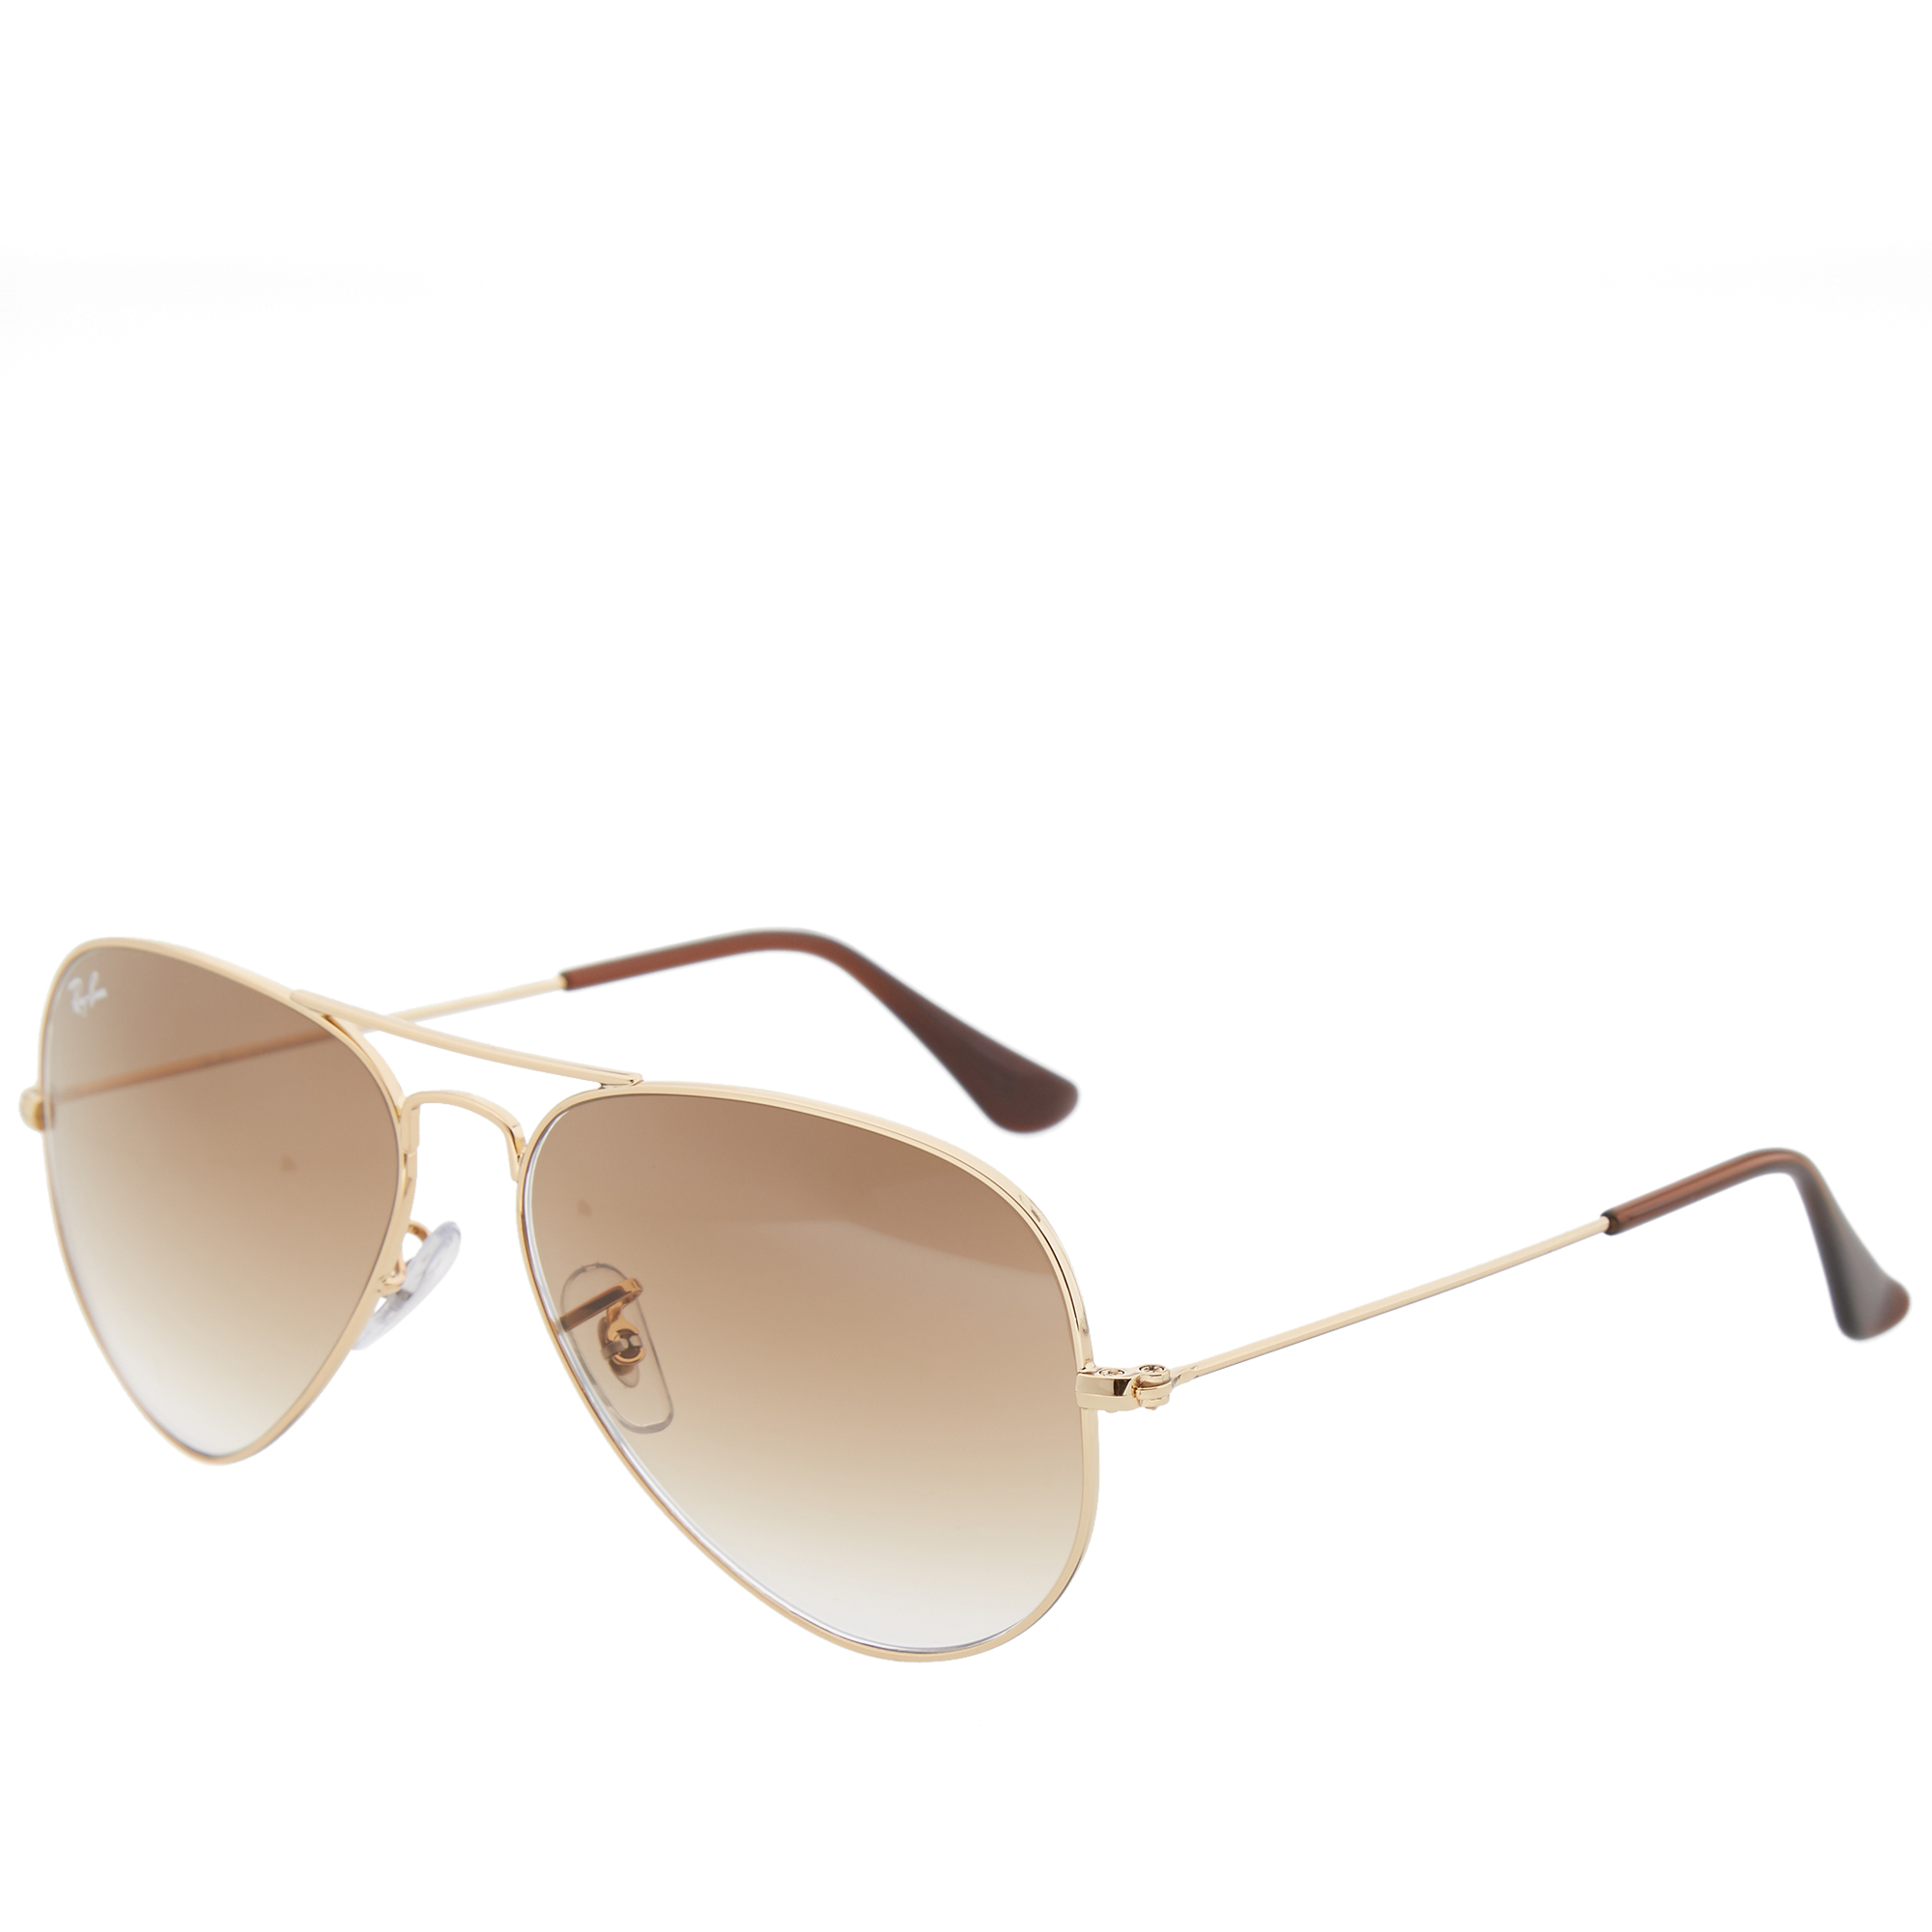 Rb3025 Aviator Sunglasses Gold Frame Crystal Gradient Bl : Ray Ban Aviator Sunglasses (Gold & Crystal Brown Gradient)